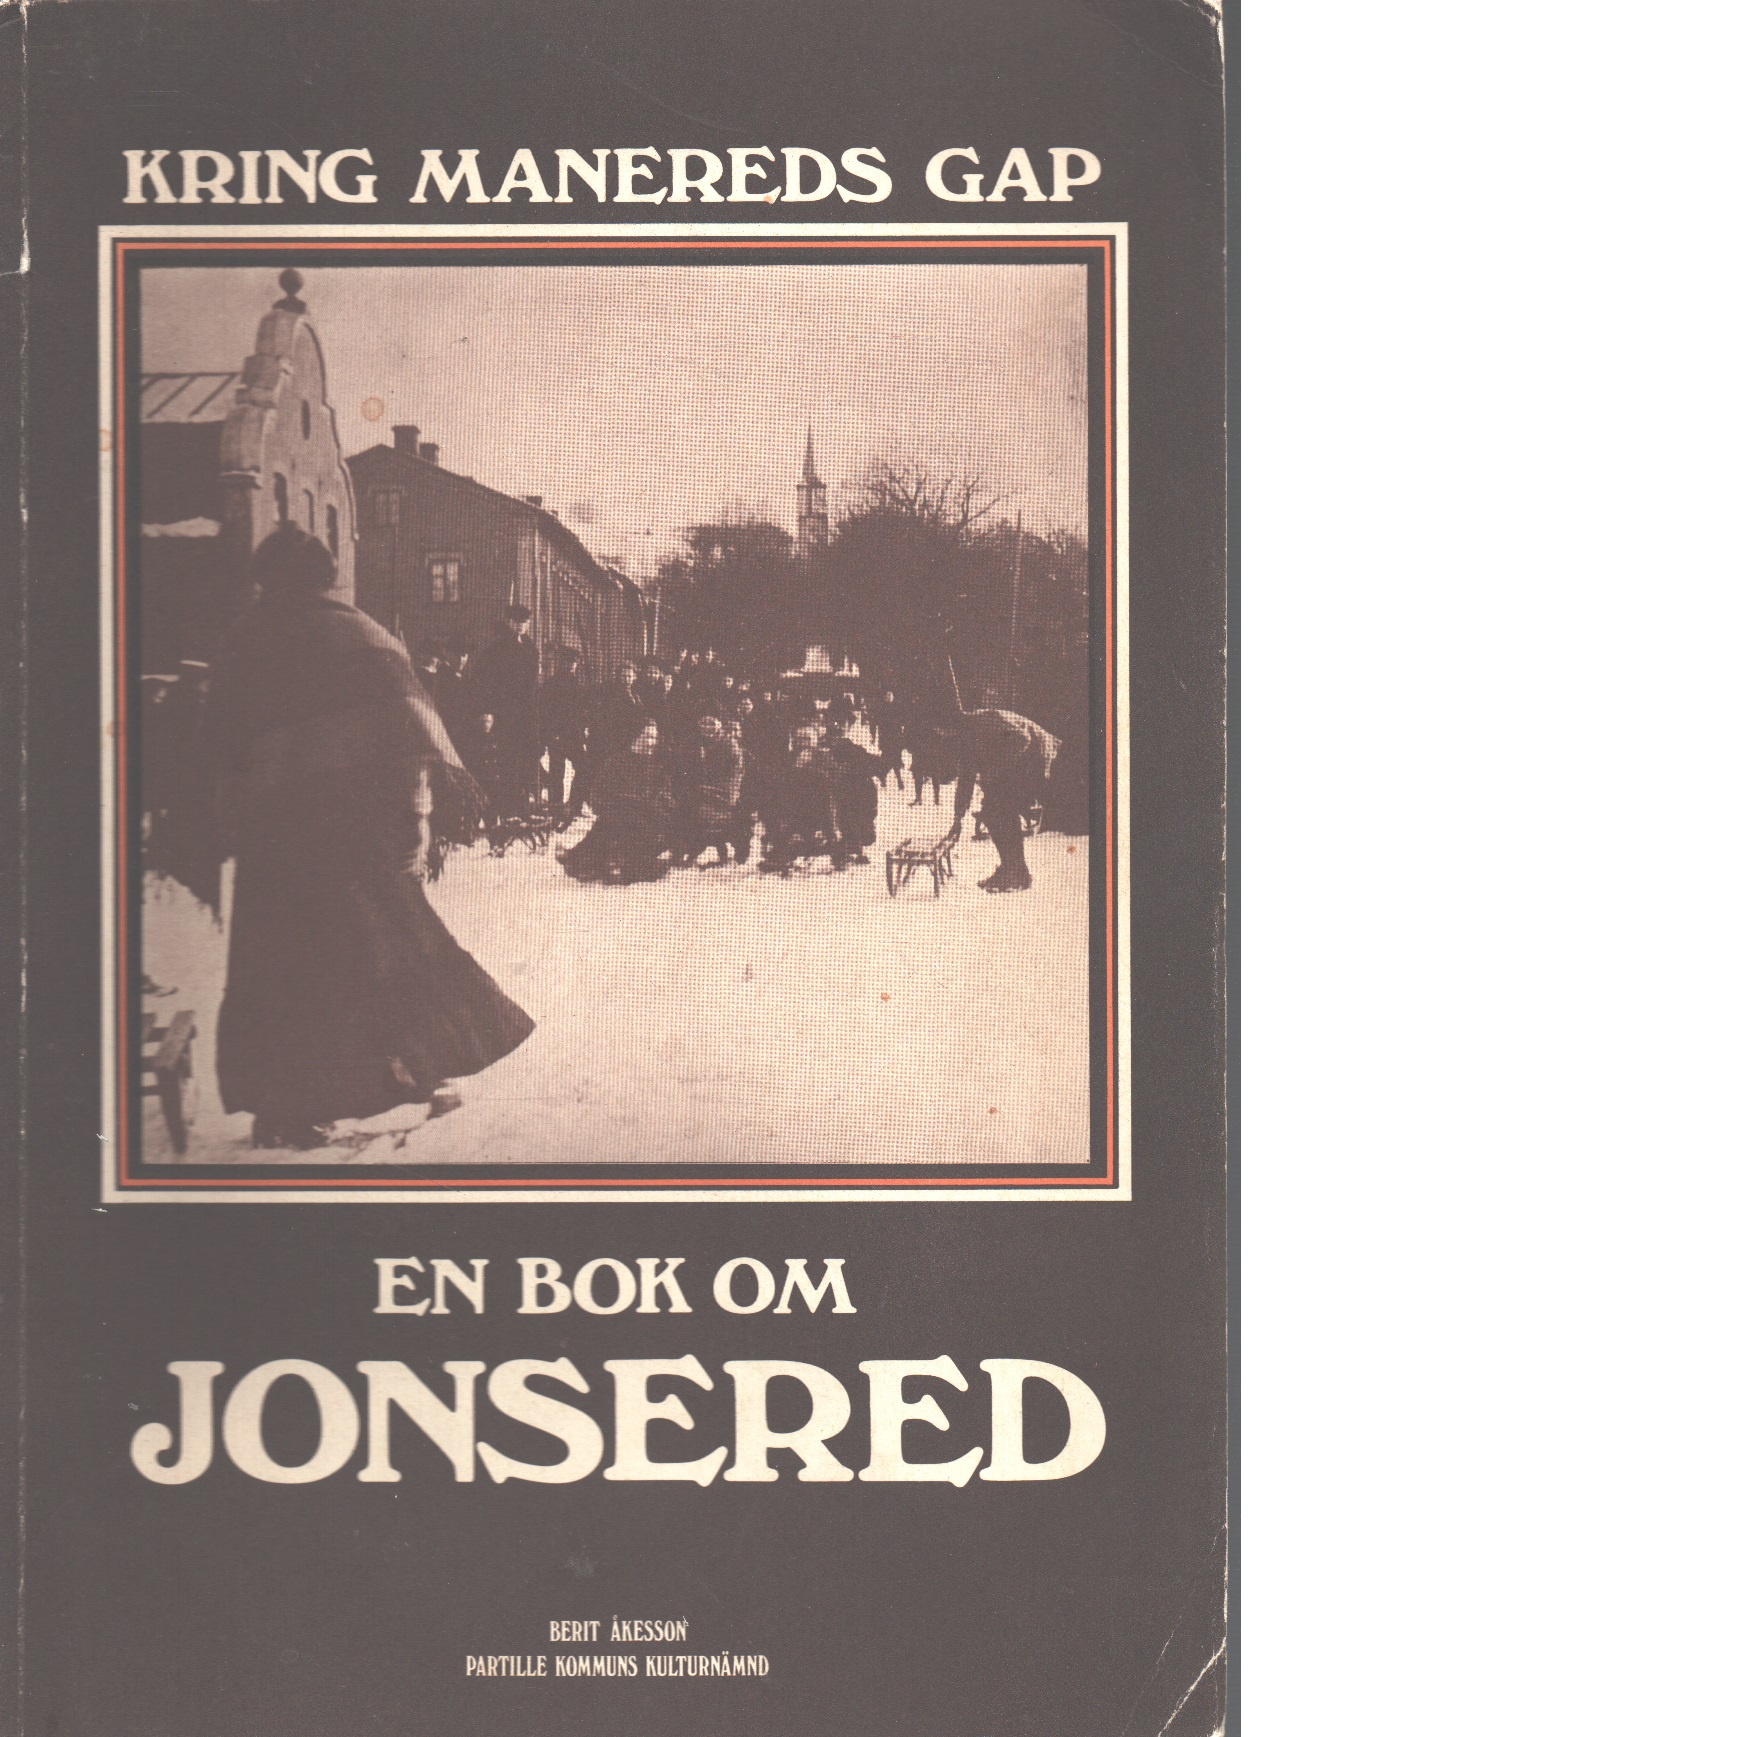 Kring manereds gap : en bok om Jonsered - Åkesson, Berit